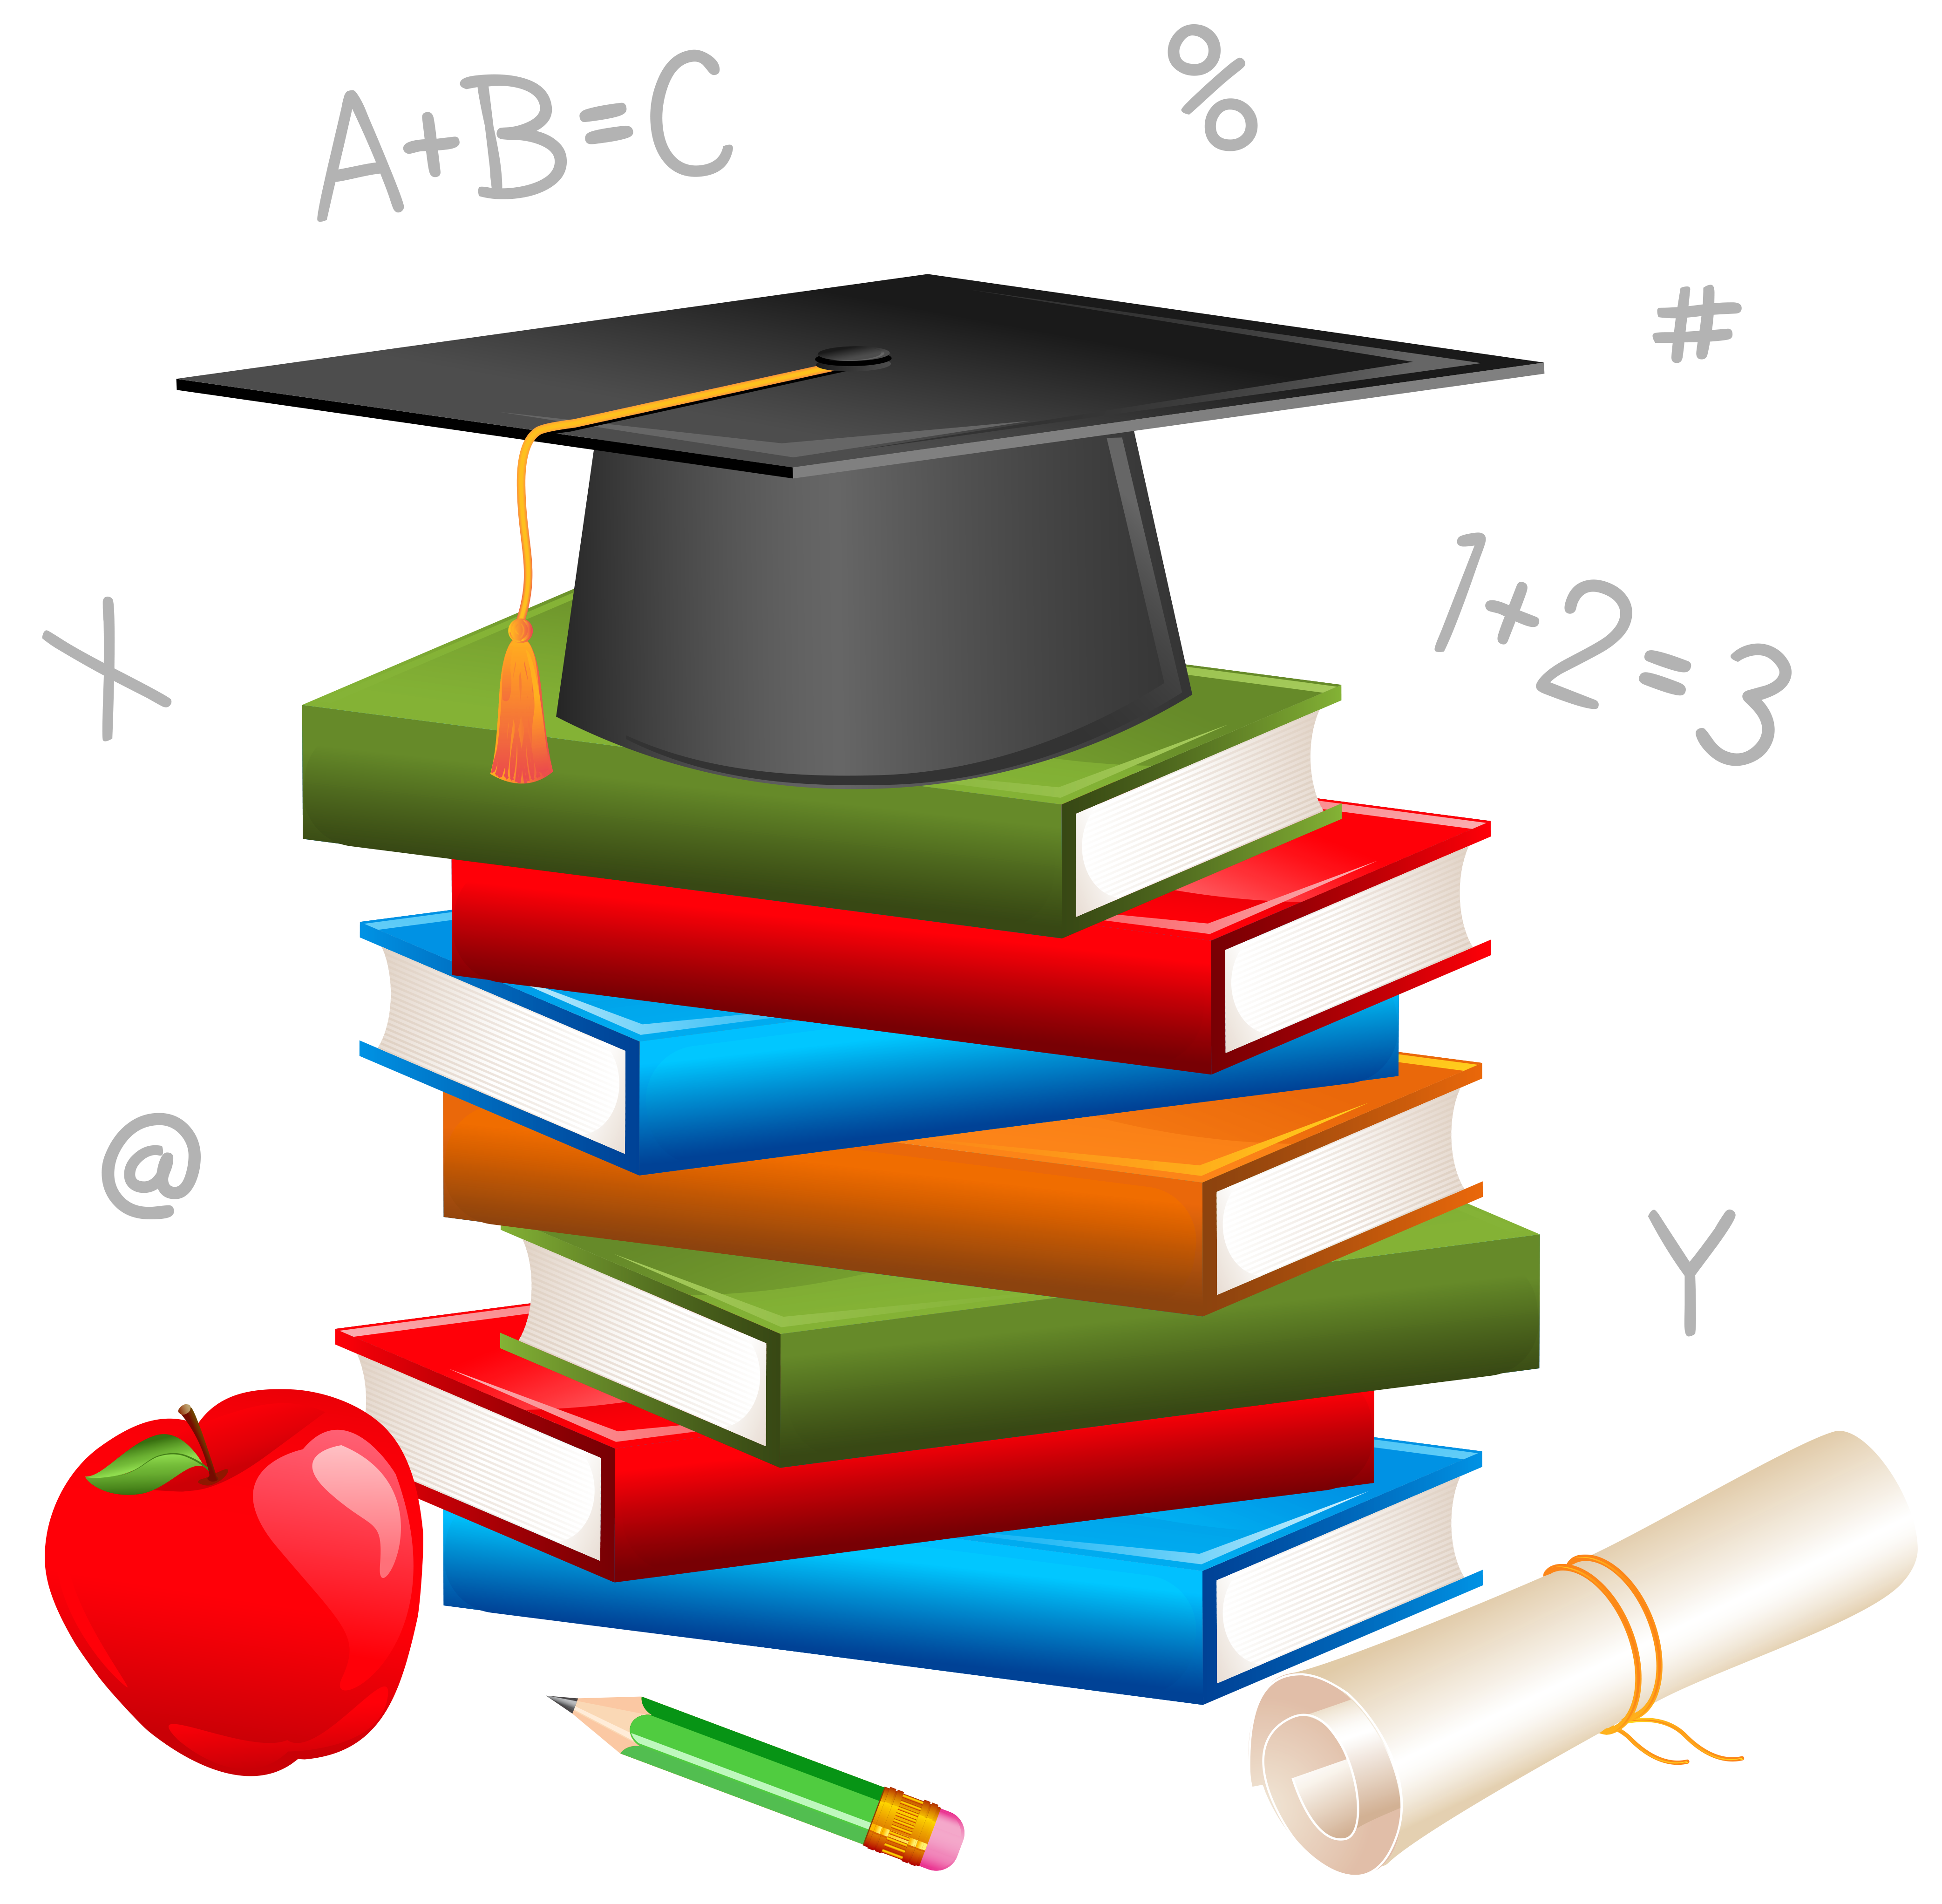 Clipart rock school. Decor png picture gallery